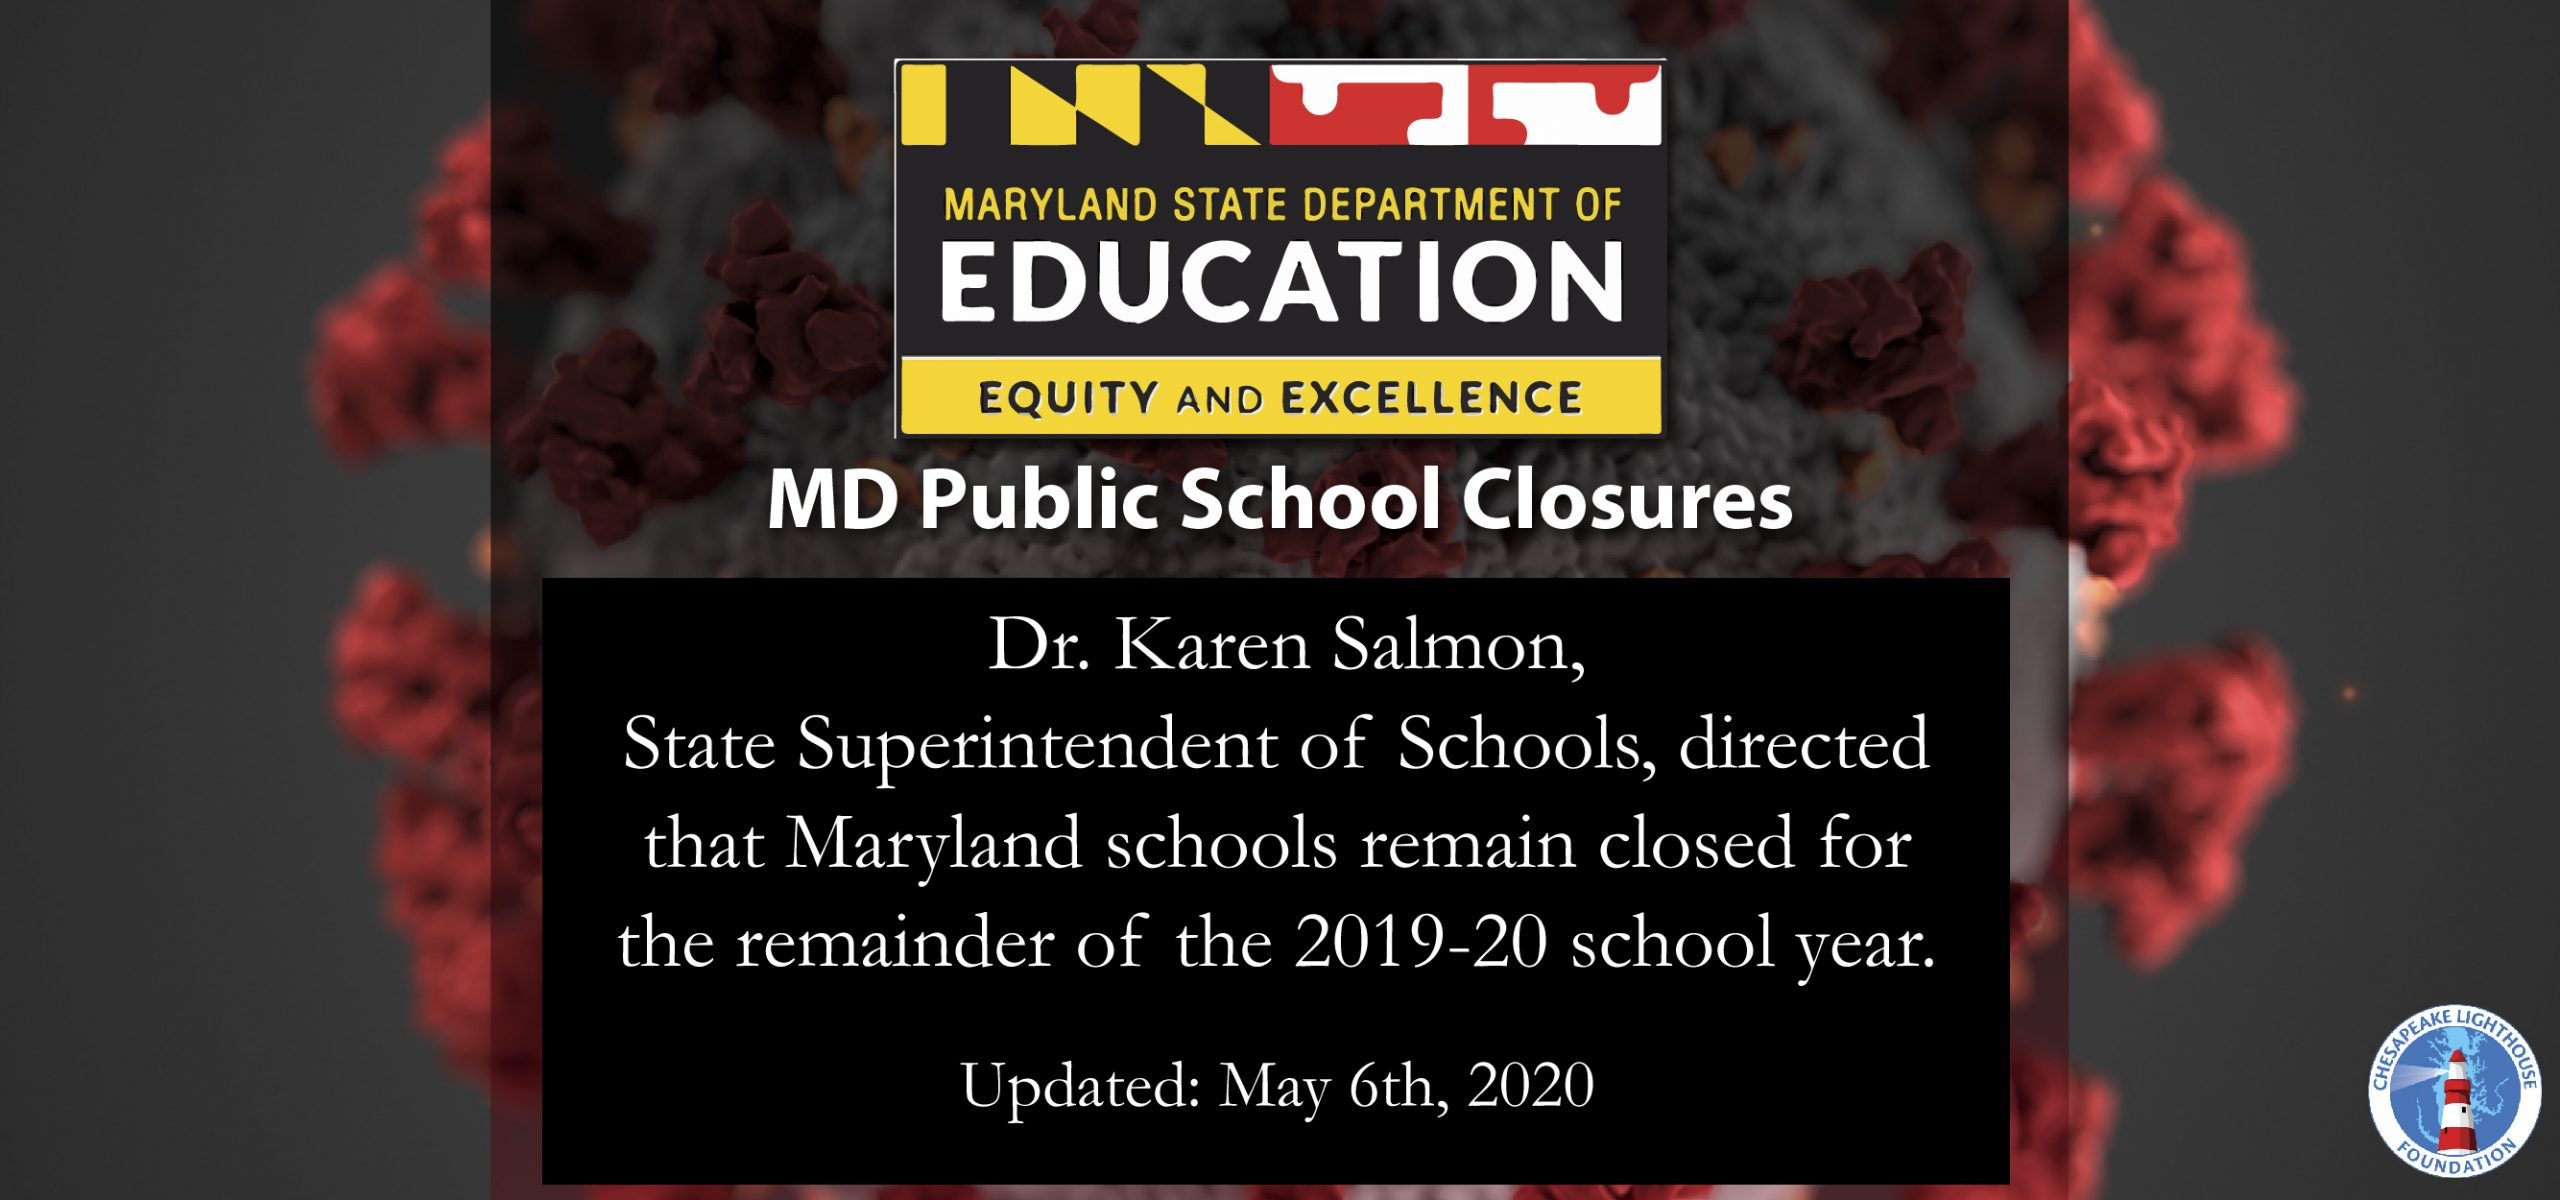 ALL MD Public Schools are Closed for the Remainder of the 2019-20 School Year